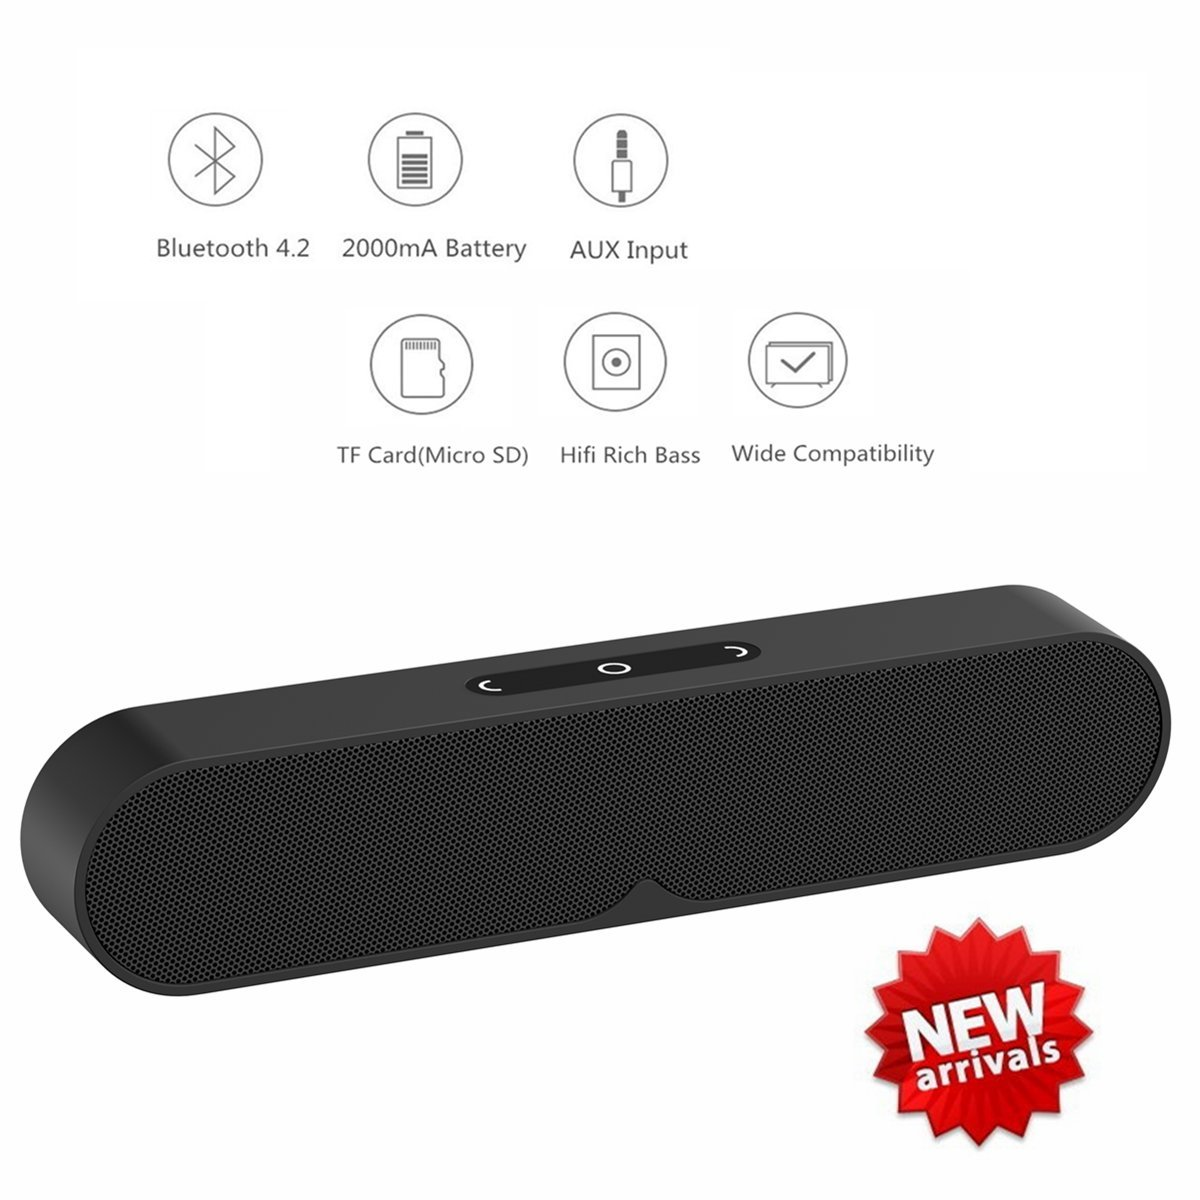 N&M Tech Bluetooth Speaker Soundbar Portable Wireless and Wired Speakers with Subwoofer Hifi Rich Bass for Phone TV Home Outdoor Travel Beach Party Shower Bluetooth 4.2 Stereo Sound Hands-Free by N&M Tech